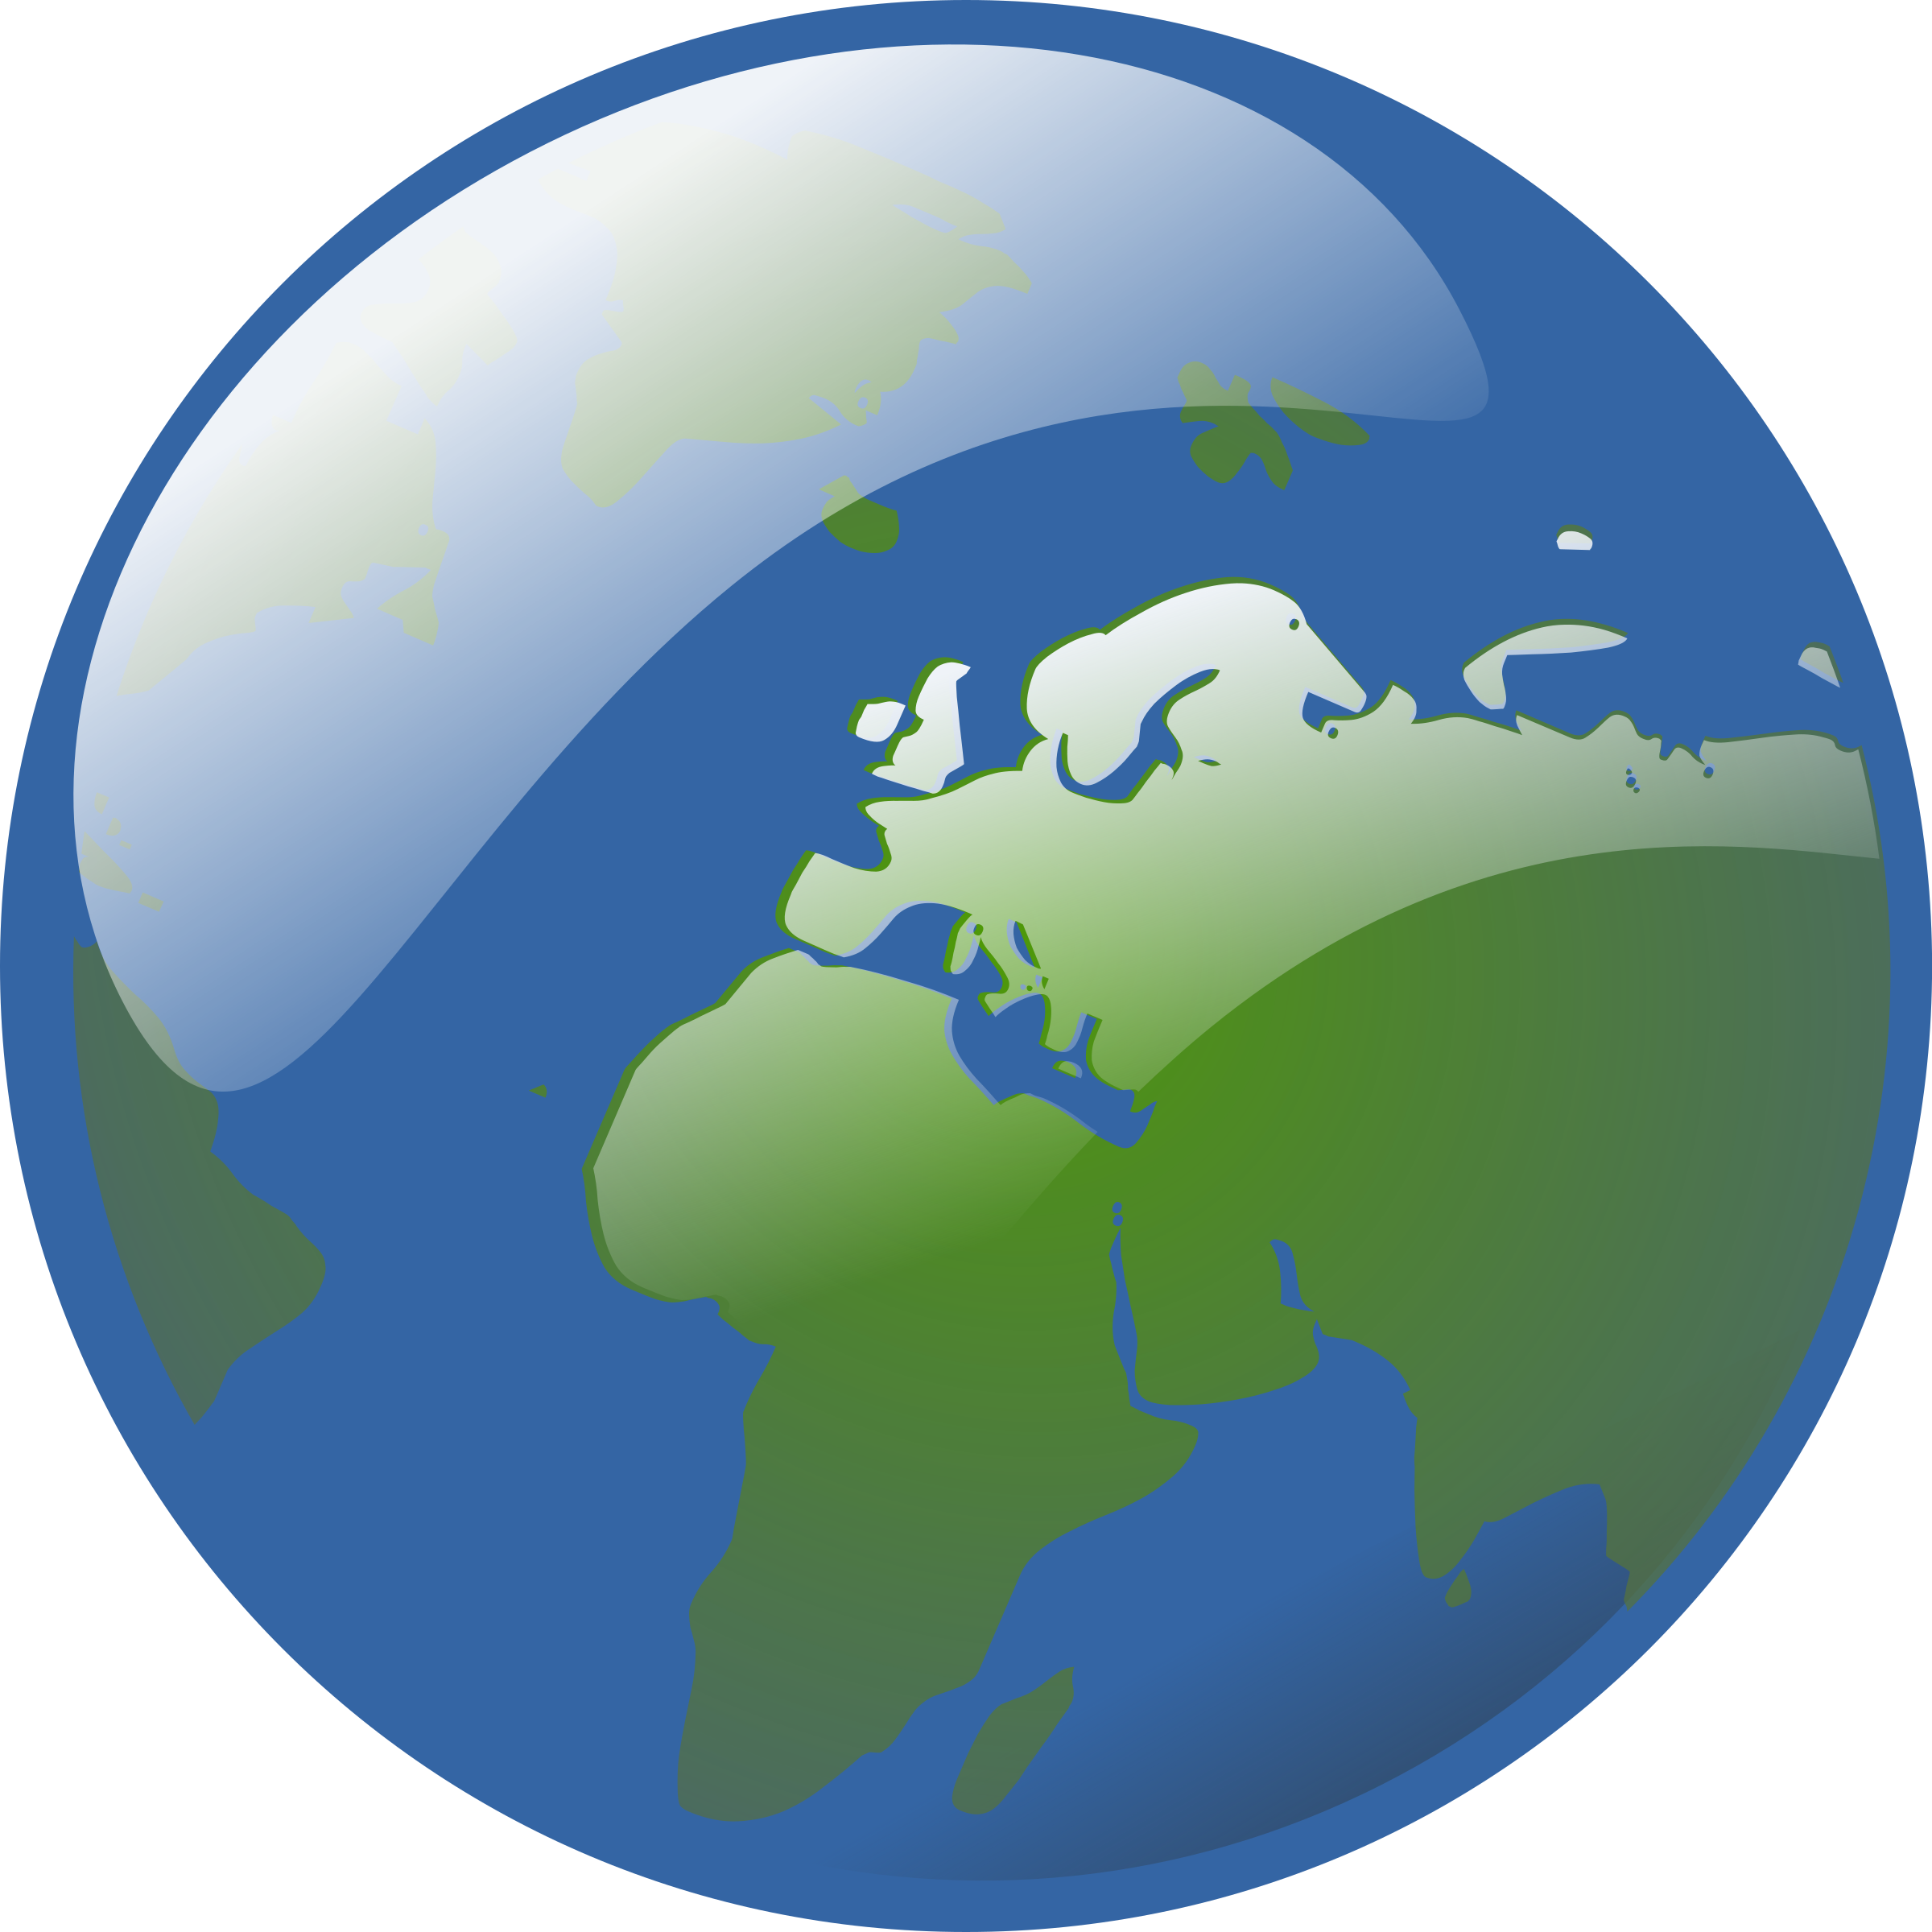 Planet clipart moving picture. Earth globe big image